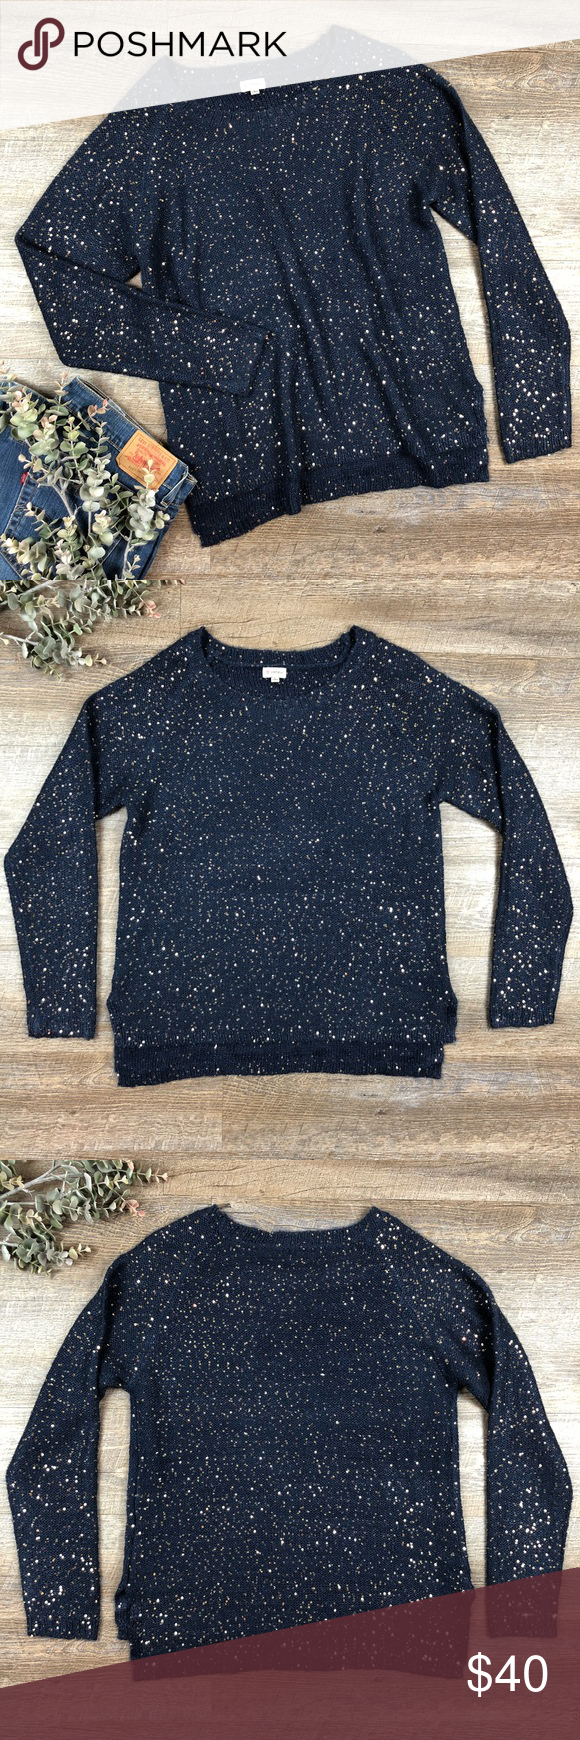 Navy Sequins Cremieux Sweater | Sequins, Navy blue and Navy